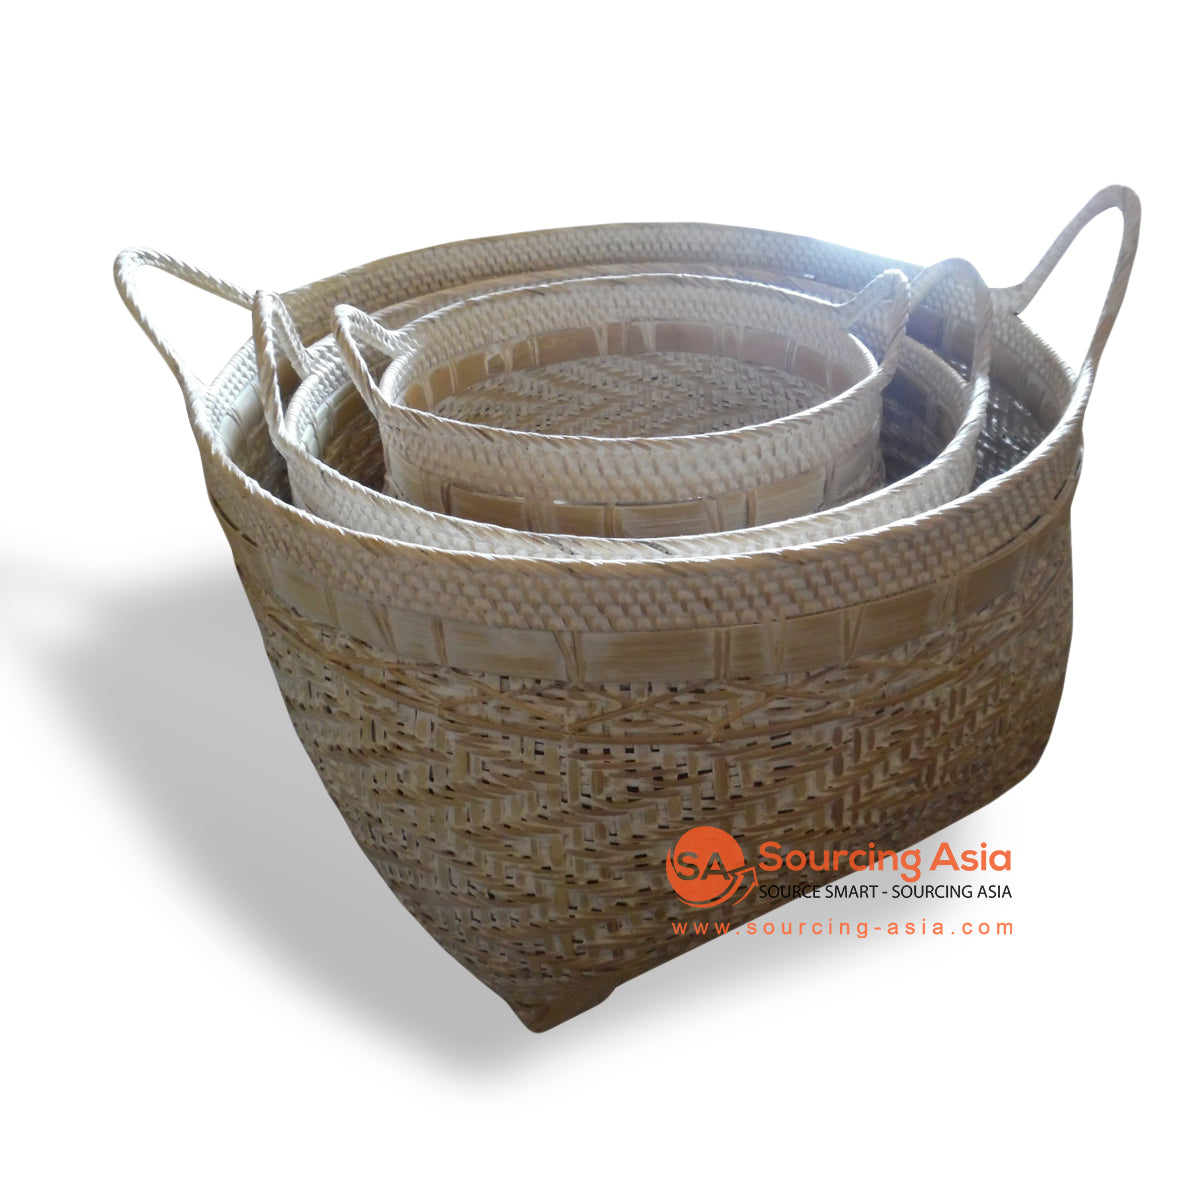 ALI050 SET OF 3 ROUND RATTAN BASKETS